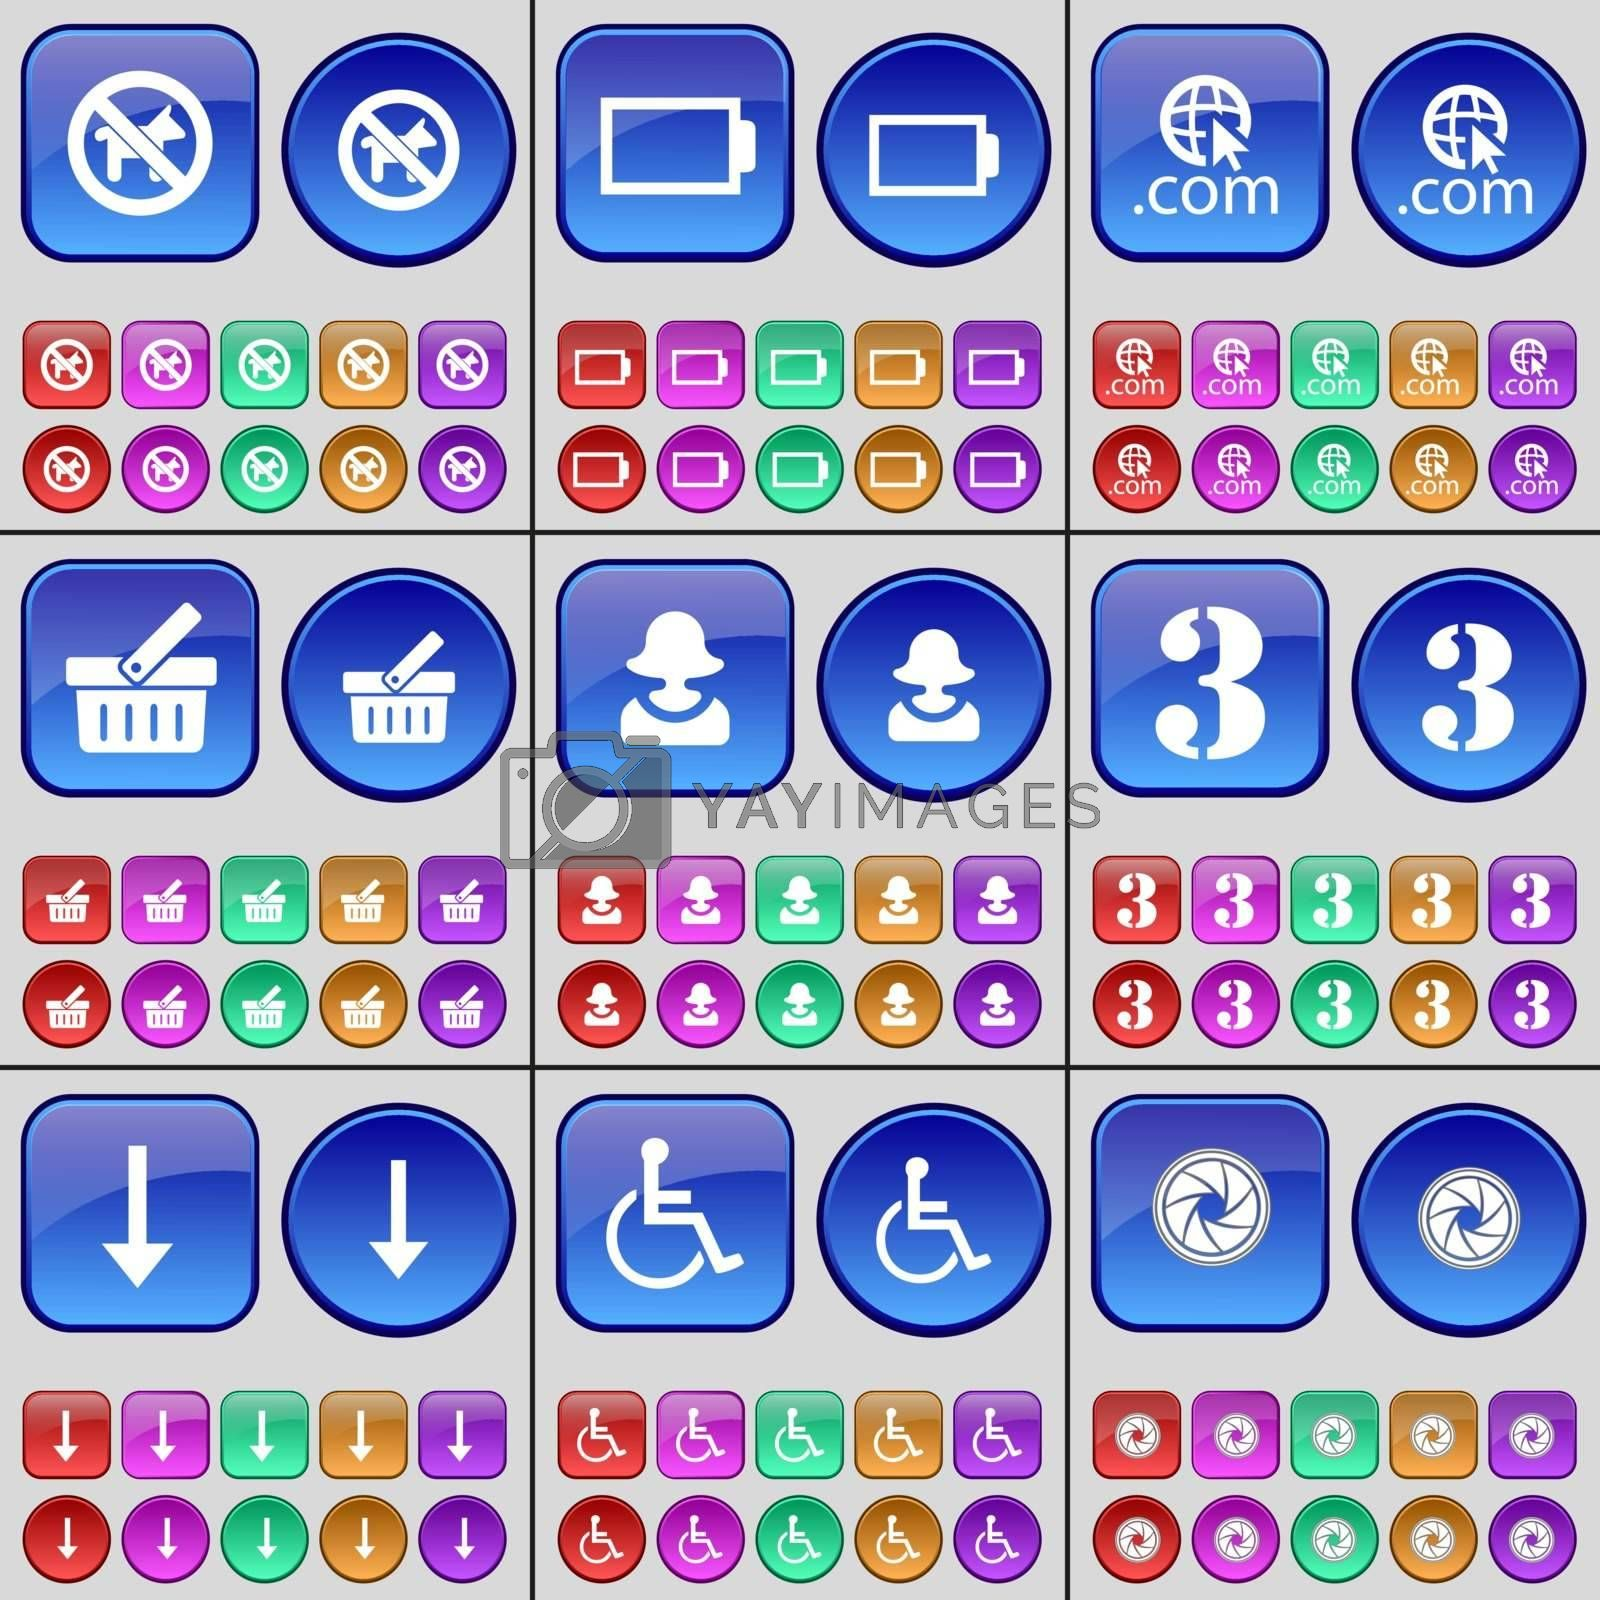 No pets allowed, Battery, Domain, Basket, Avatar, Three, Arrow down, Disabled person, Lens. A large set of multi-colored buttons. Vector illustration